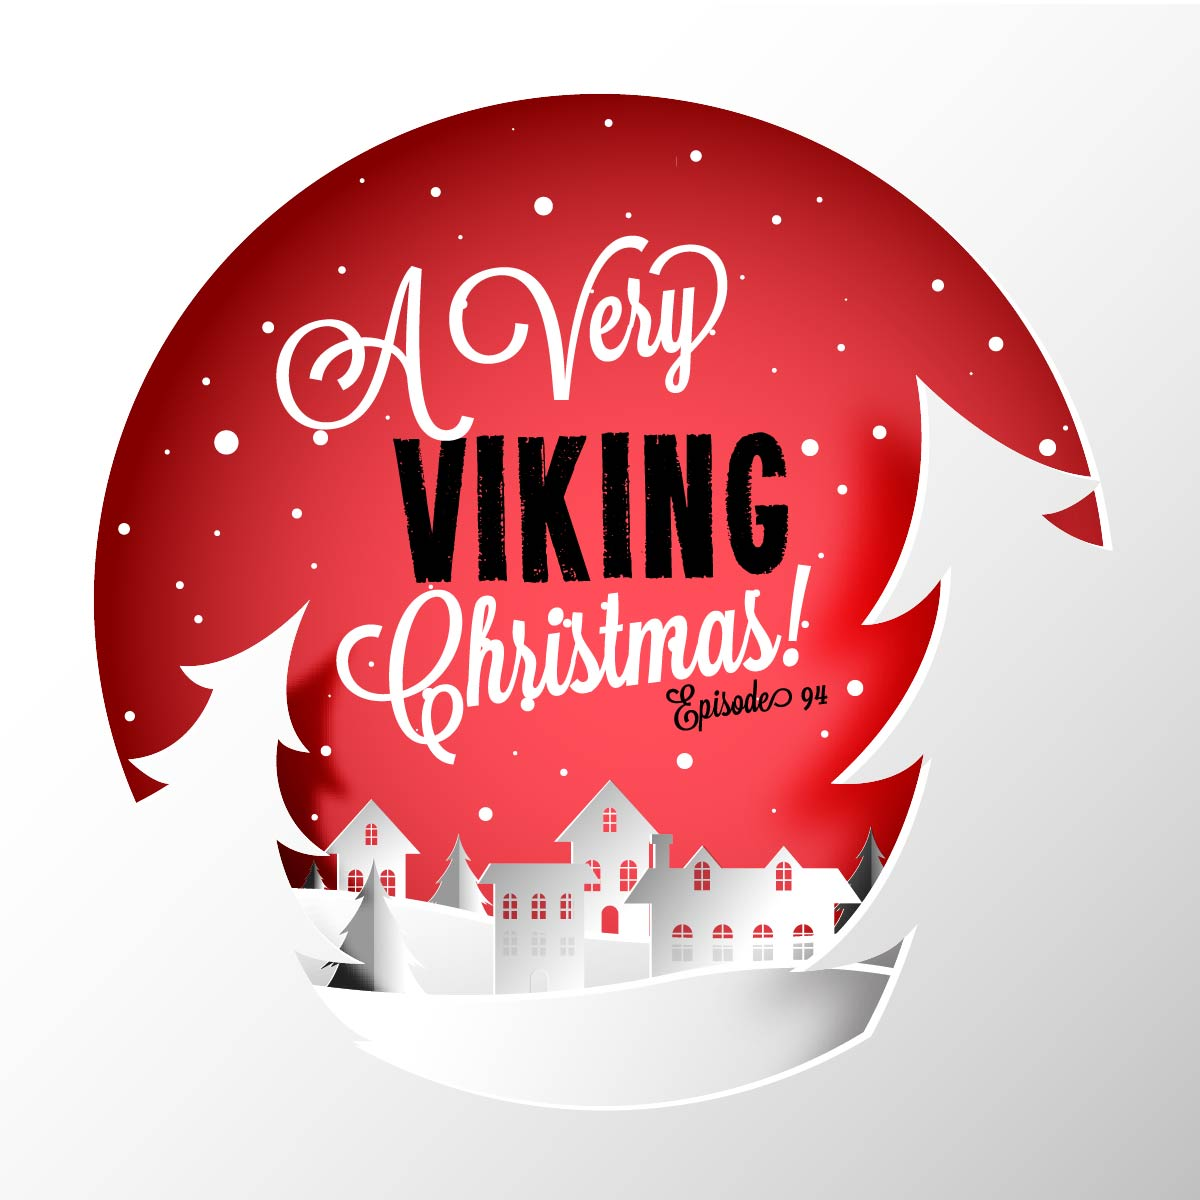 view larger image - Viking Christmas